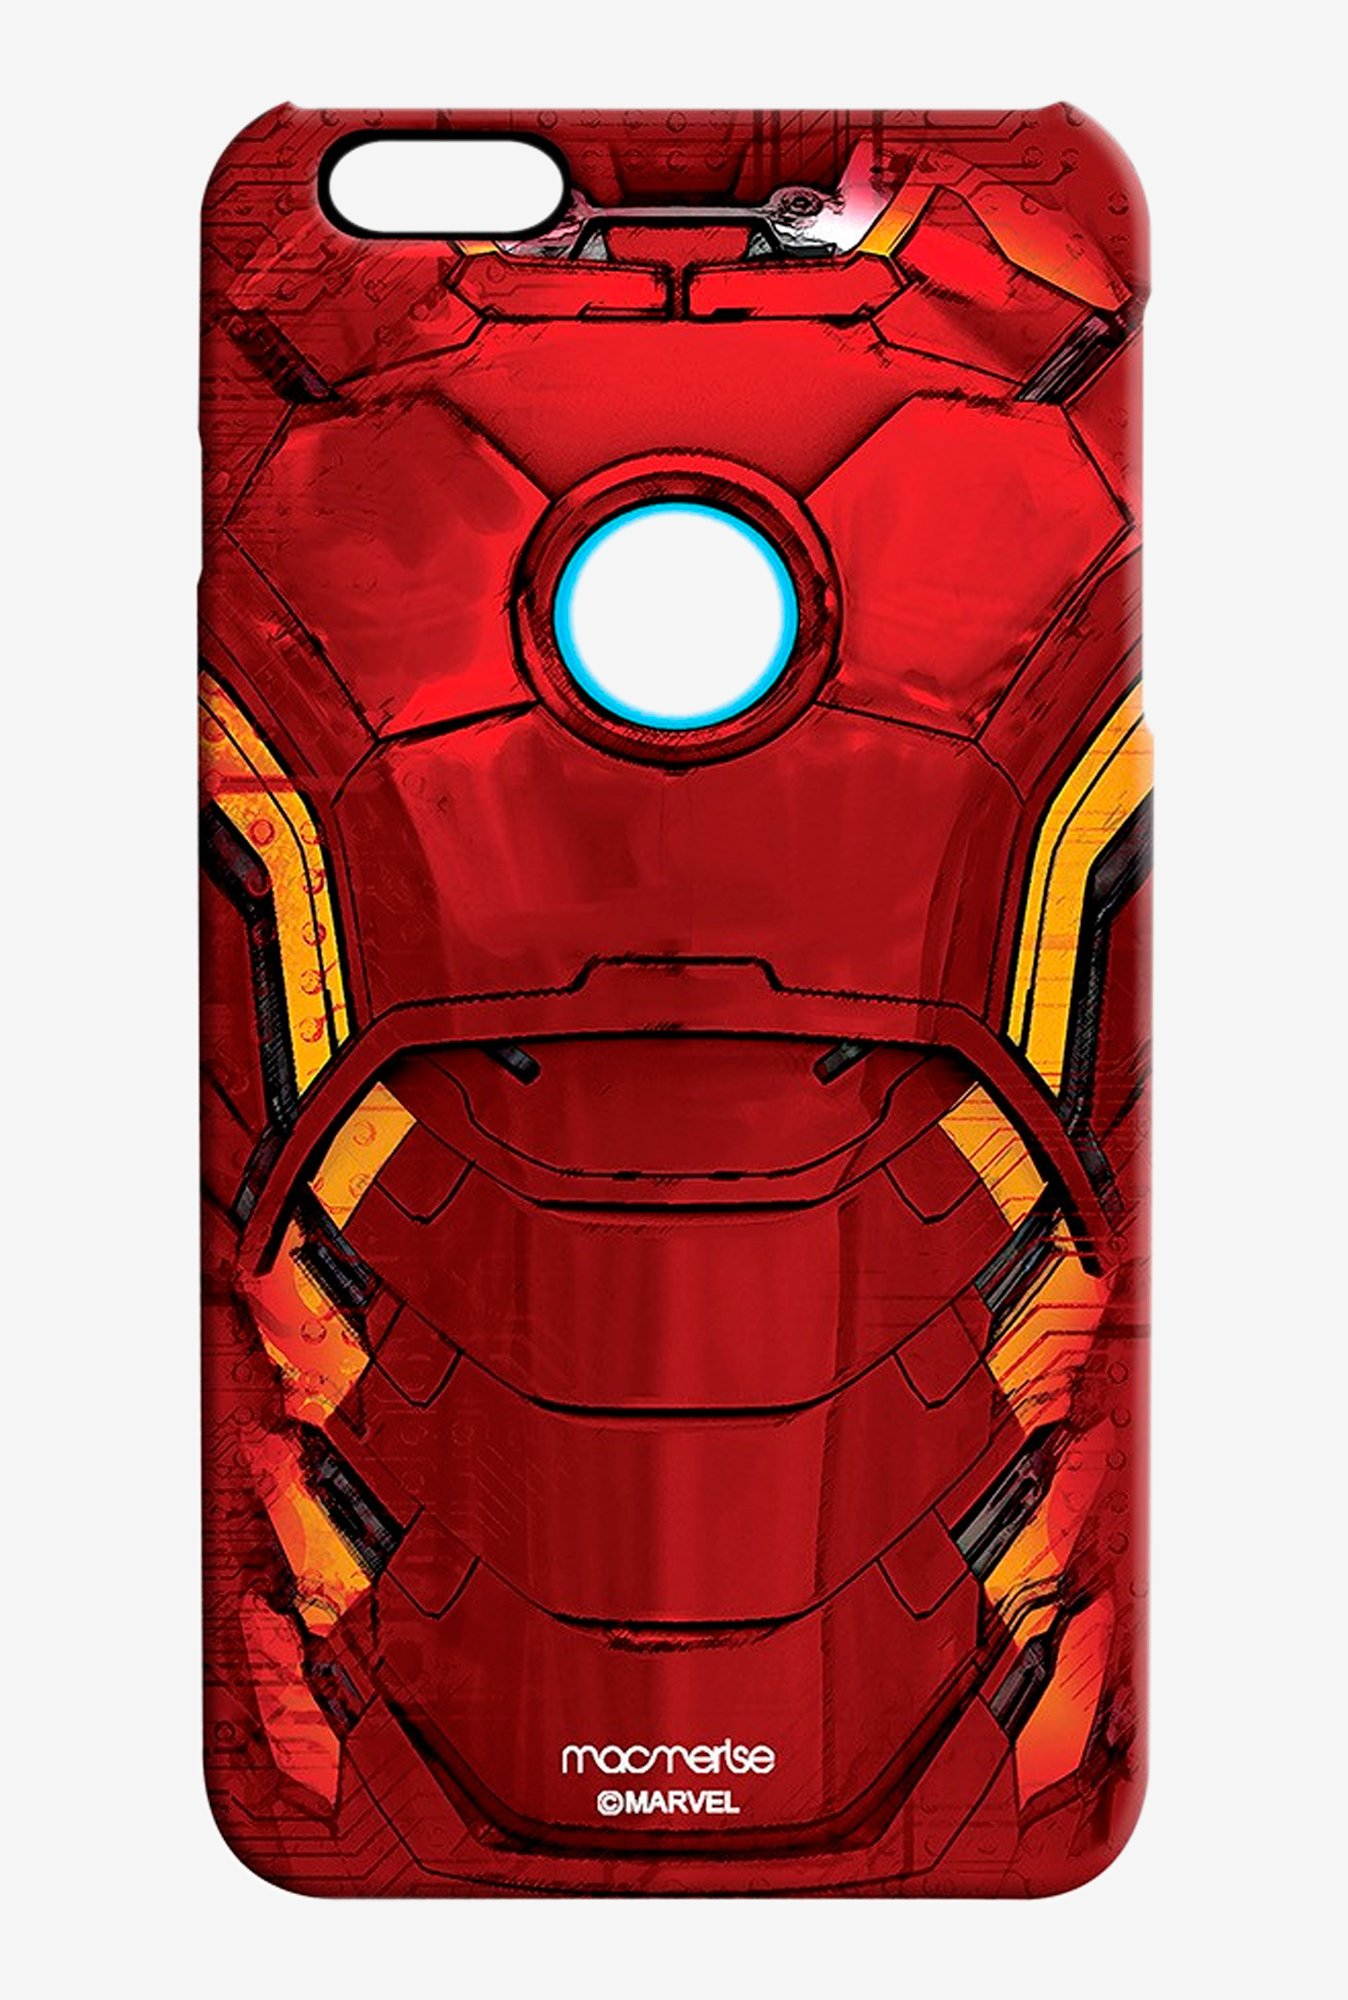 Macmerise Suit of Armour Pro Case for iPhone 6 Plus